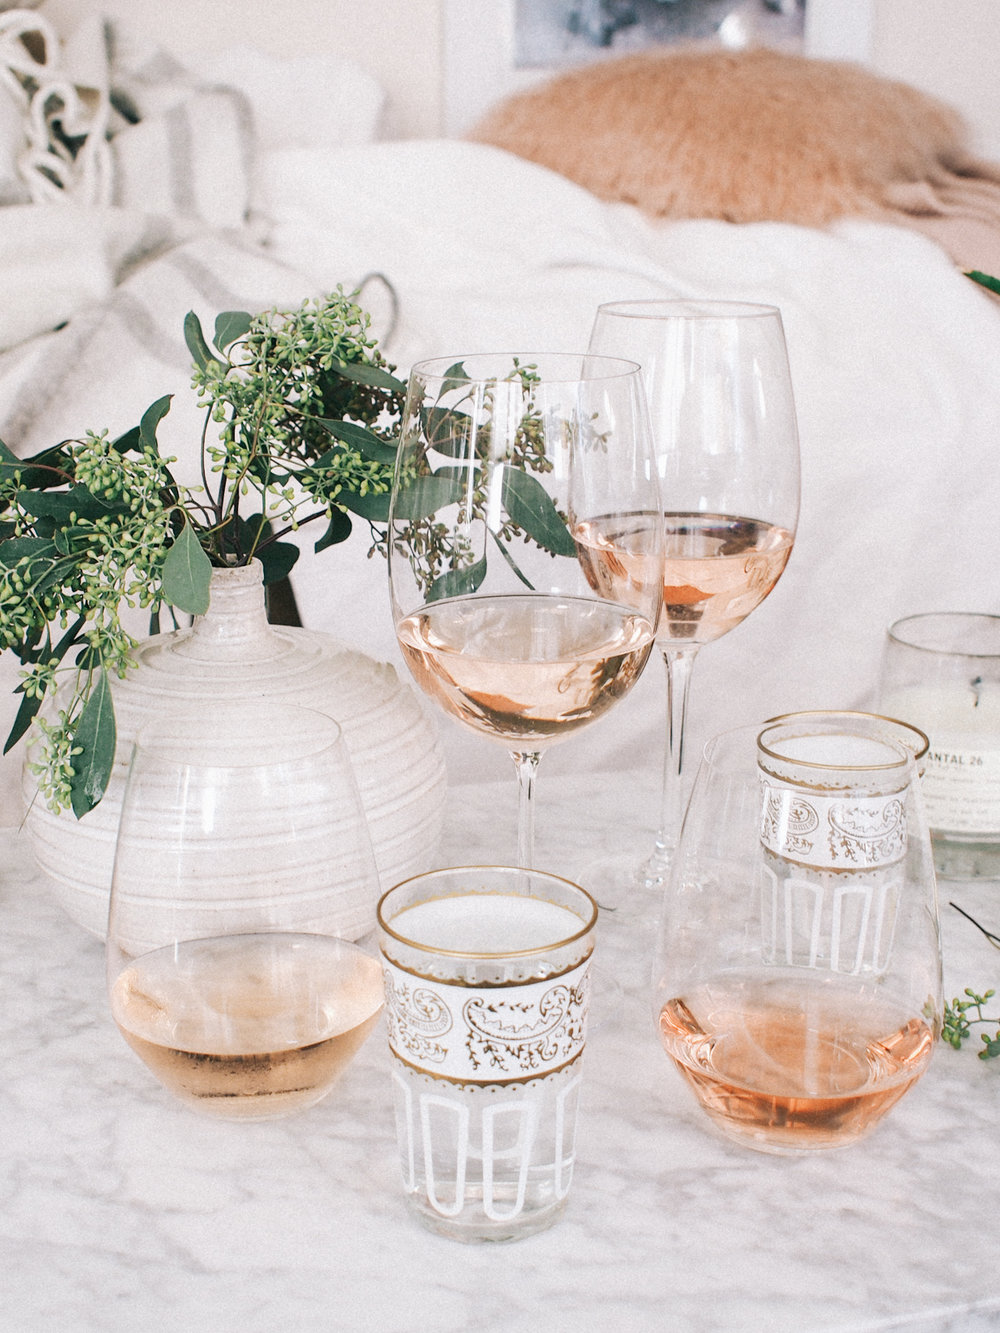 What I Tried This Weekend: An at home Rosé tasting | A Fabulous Fete